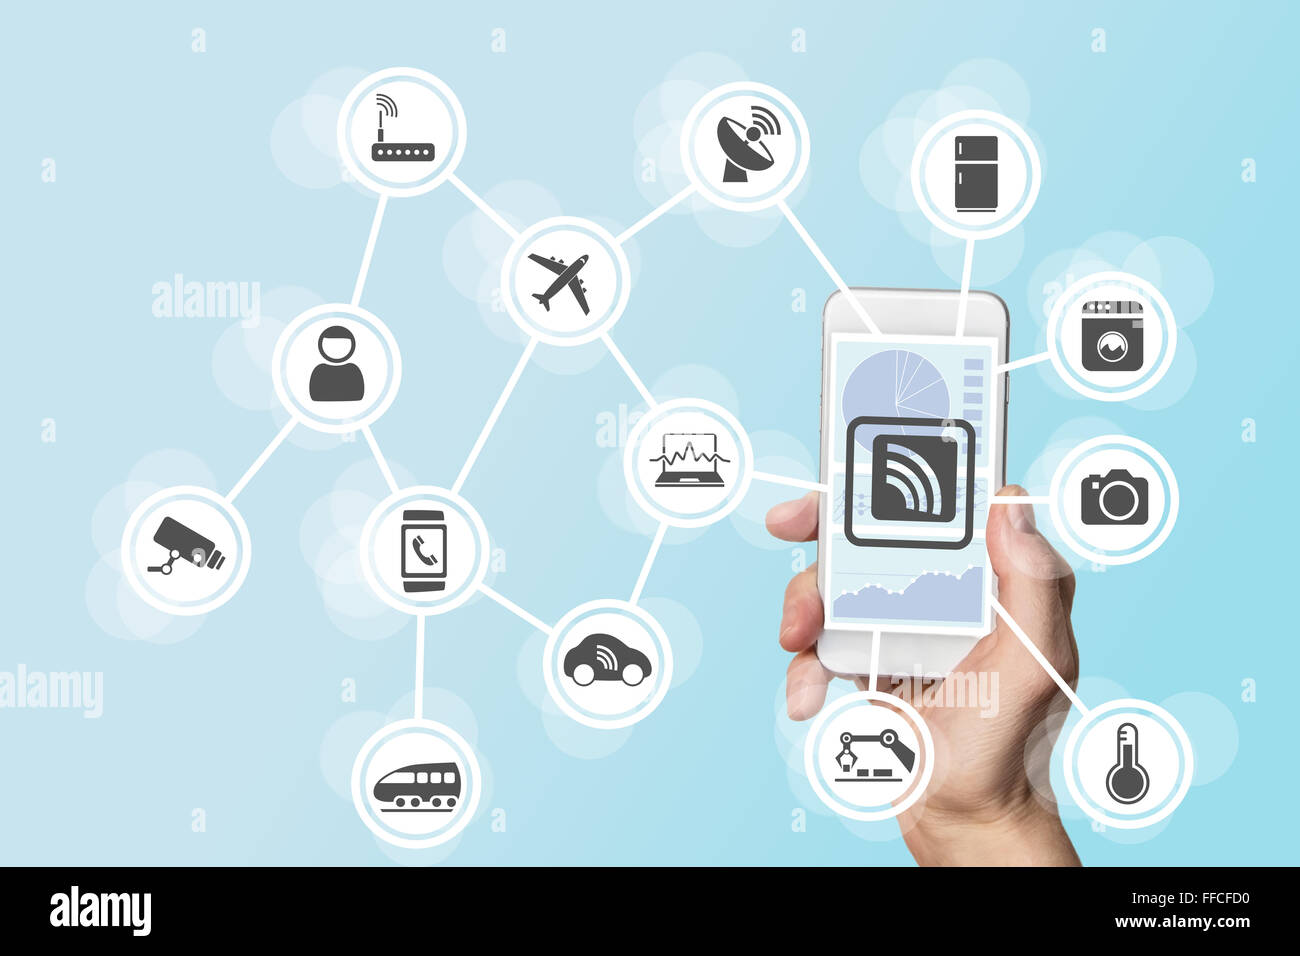 Digitization and mobility concept illustrated by hand holding modern smart phone - Stock Image